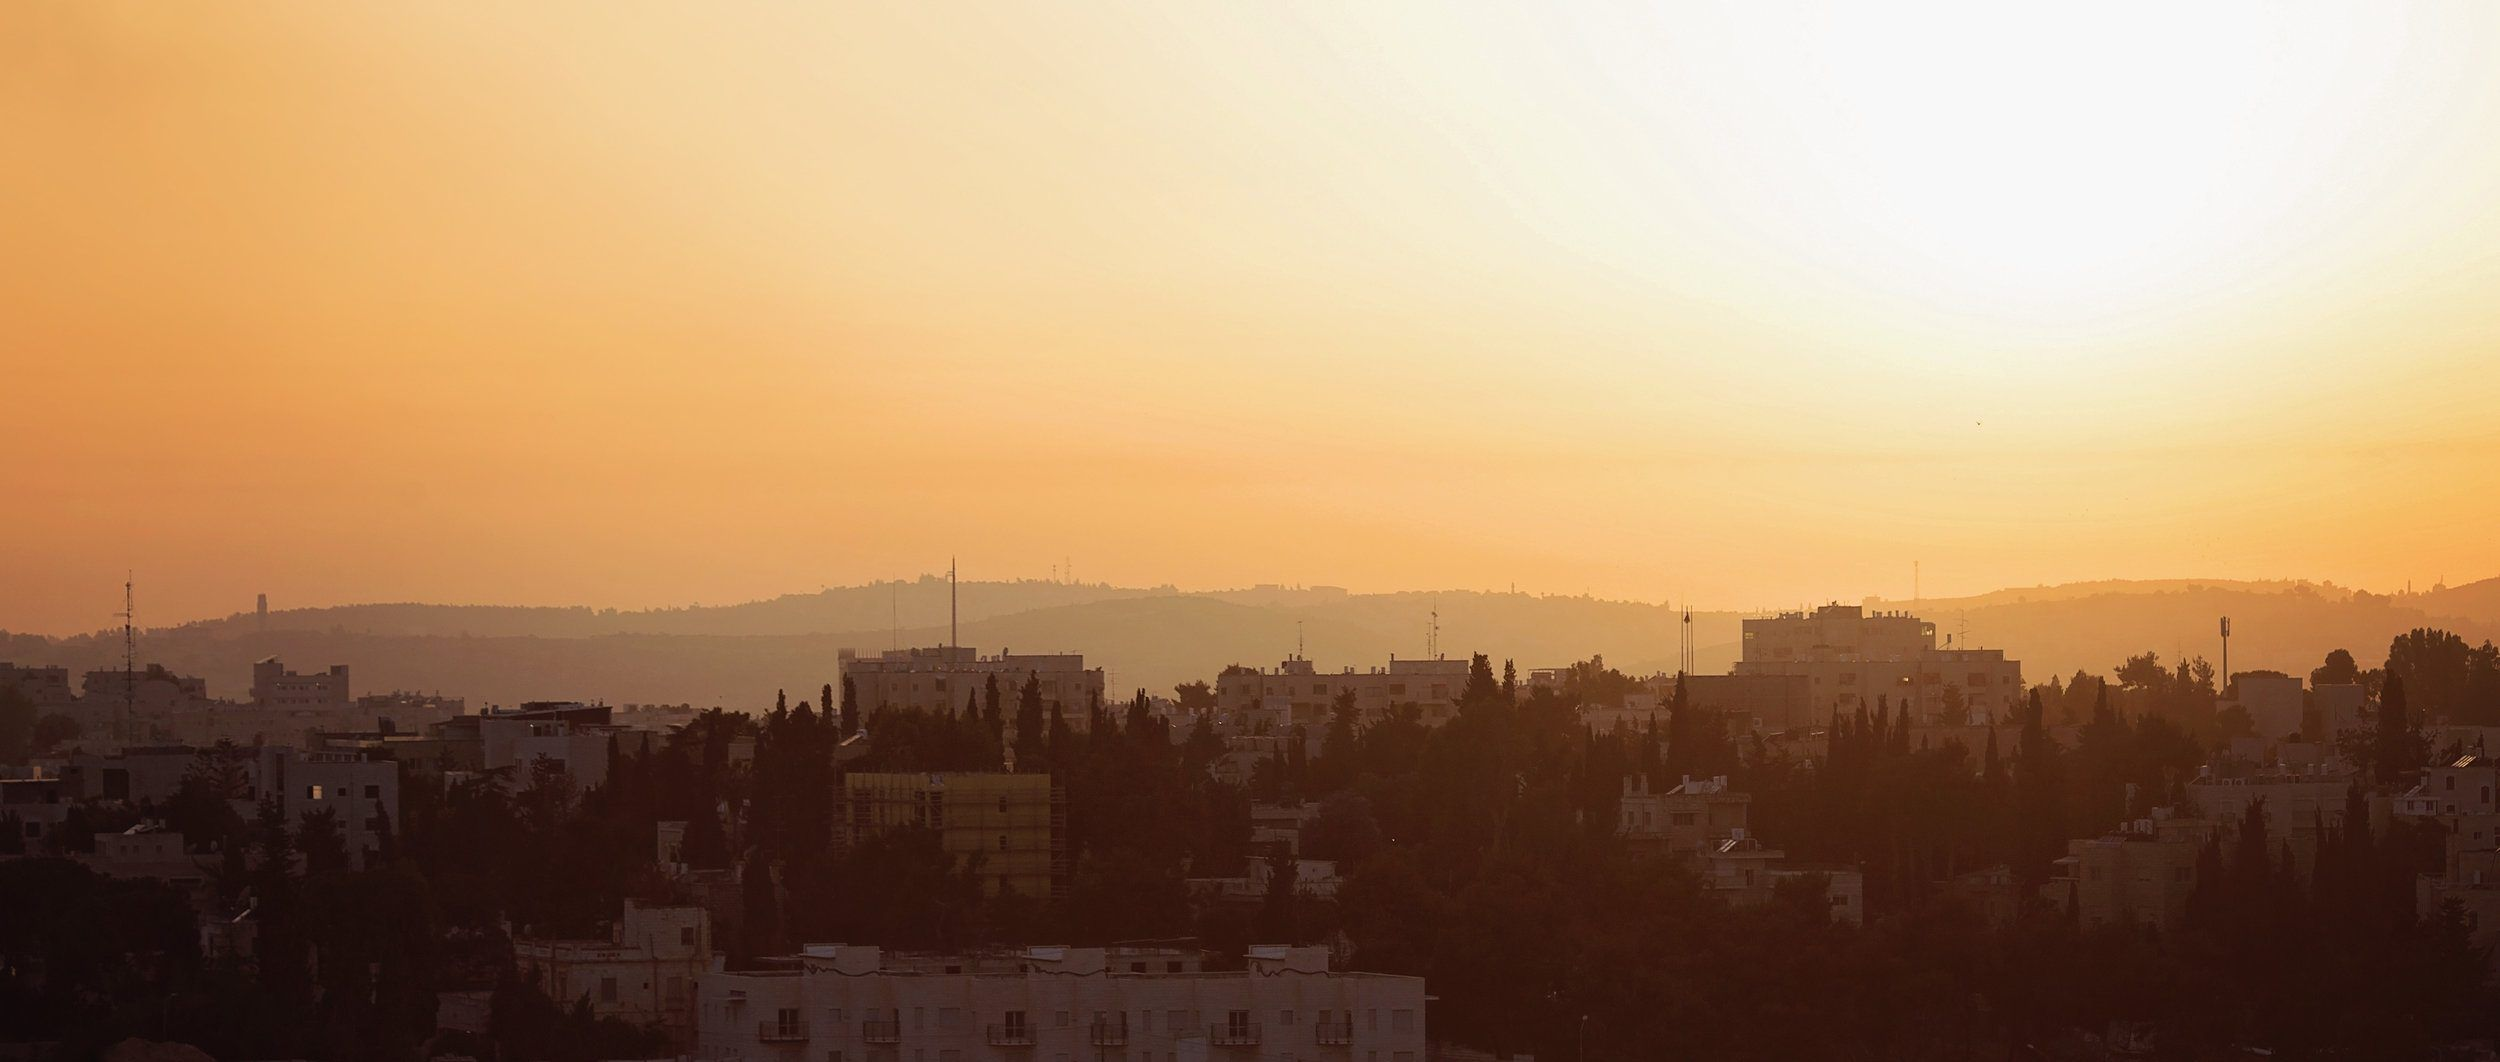 SUNSET IN JERUSALEM - On our first day in Jerusalem, we drove to a lookout to watch the sun set over the city. The haze sent the sun glowing across the desert and bringing life to the stories I'd heard for years and years about all that happened in this city.